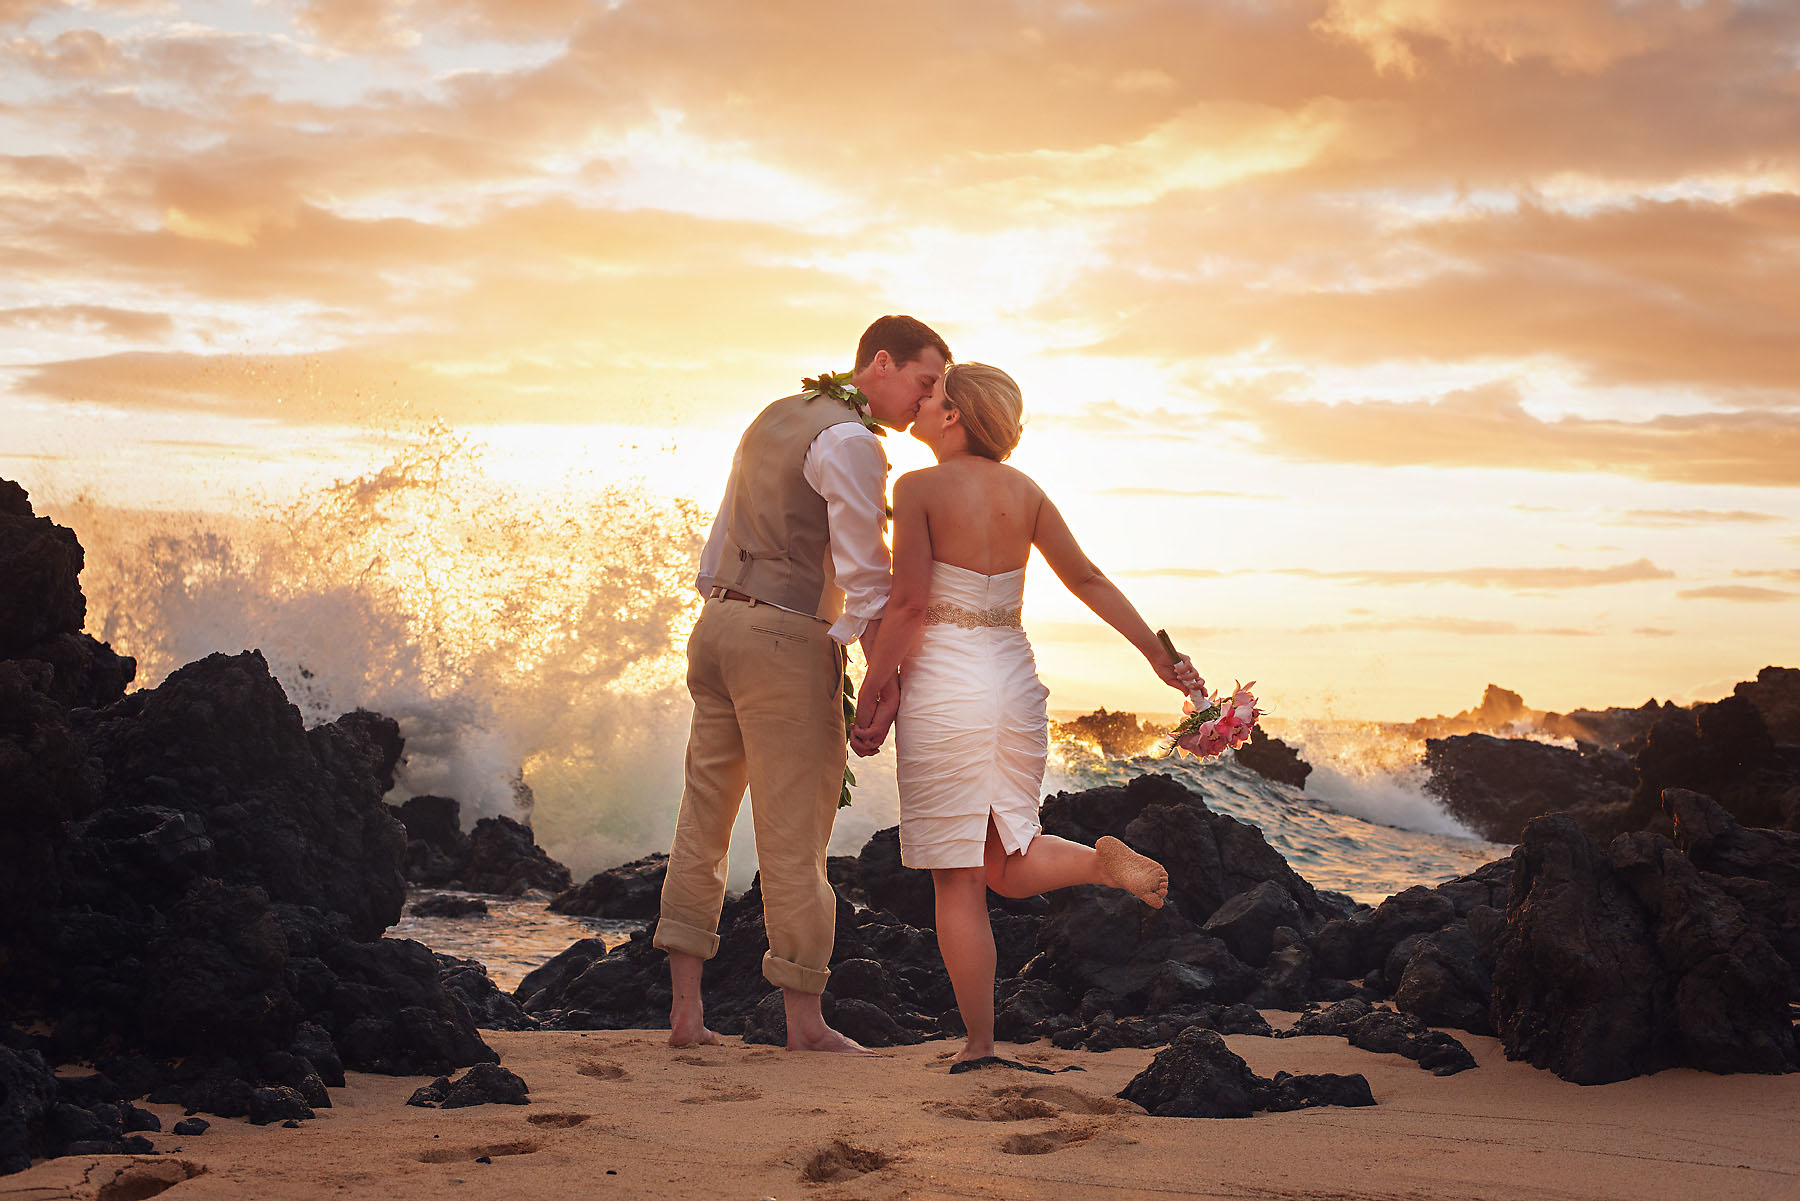 Waves Crash Behind the Bride and Groom with the sunset at this wedding in Maui, Hawaii.